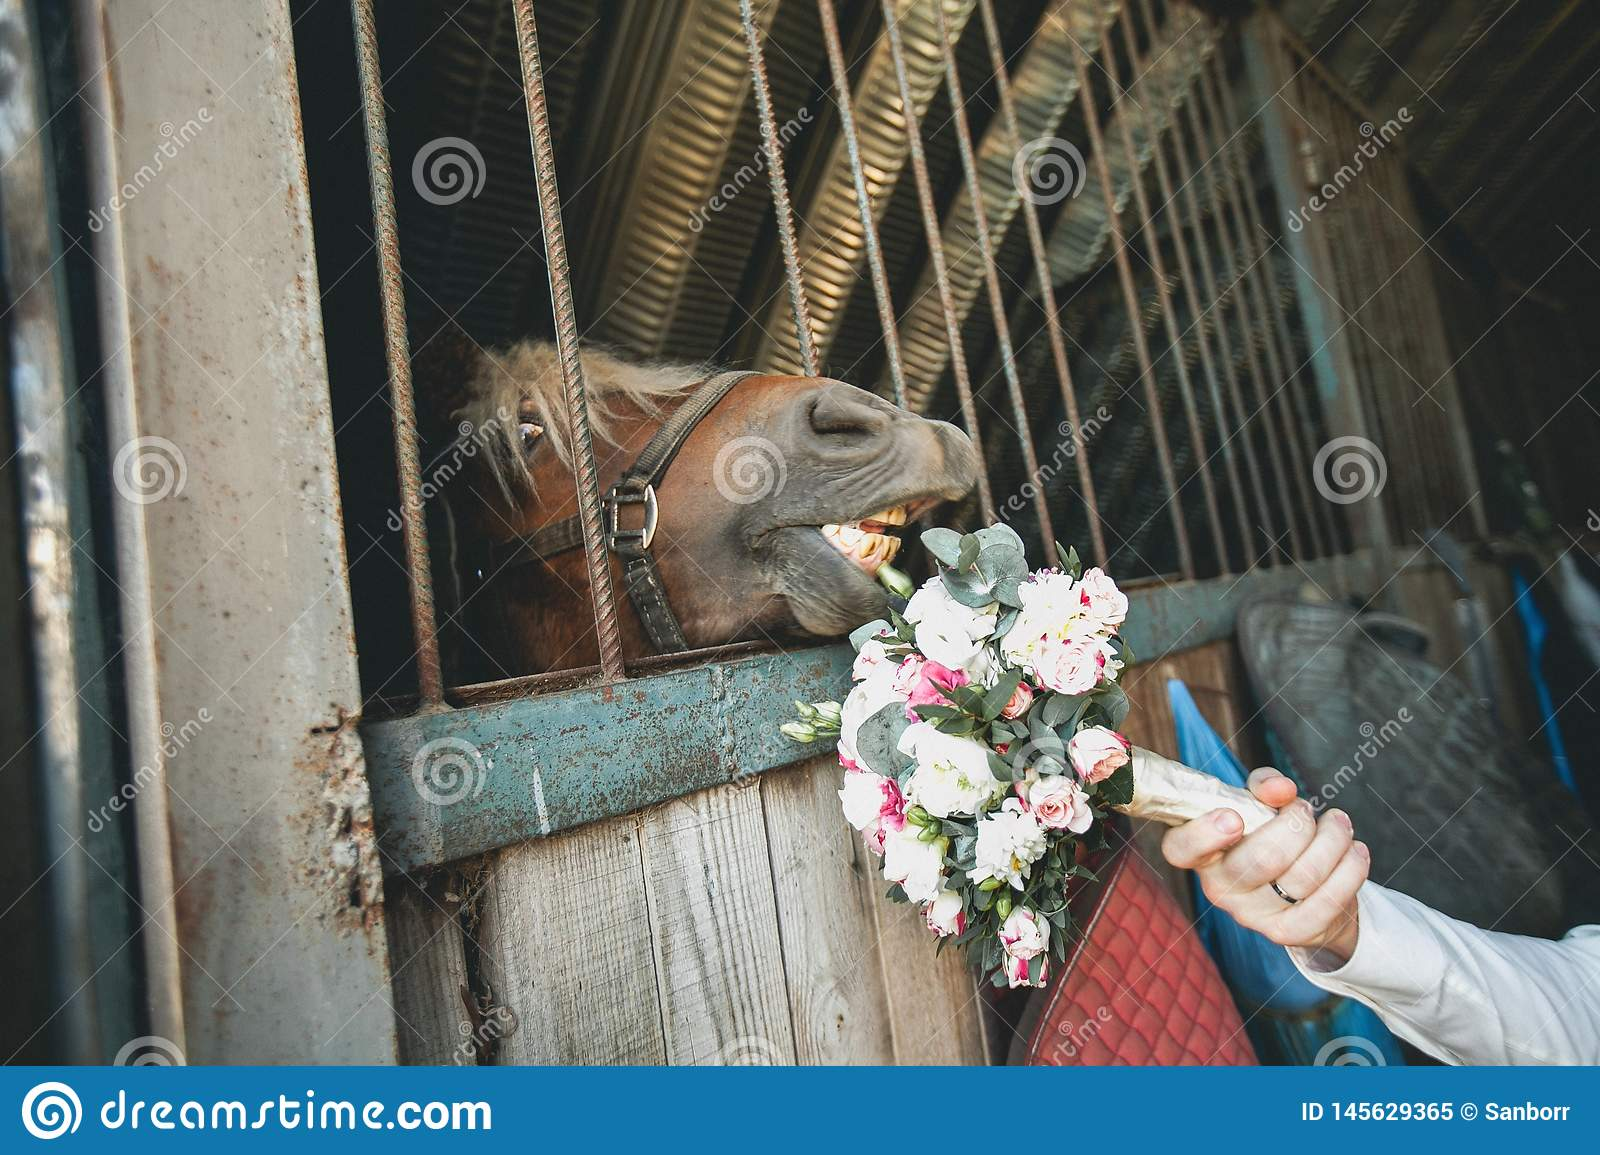 Wedding bouquet of different flowers and green leaves in the hand of the groom and the muzzle of the horse stretches